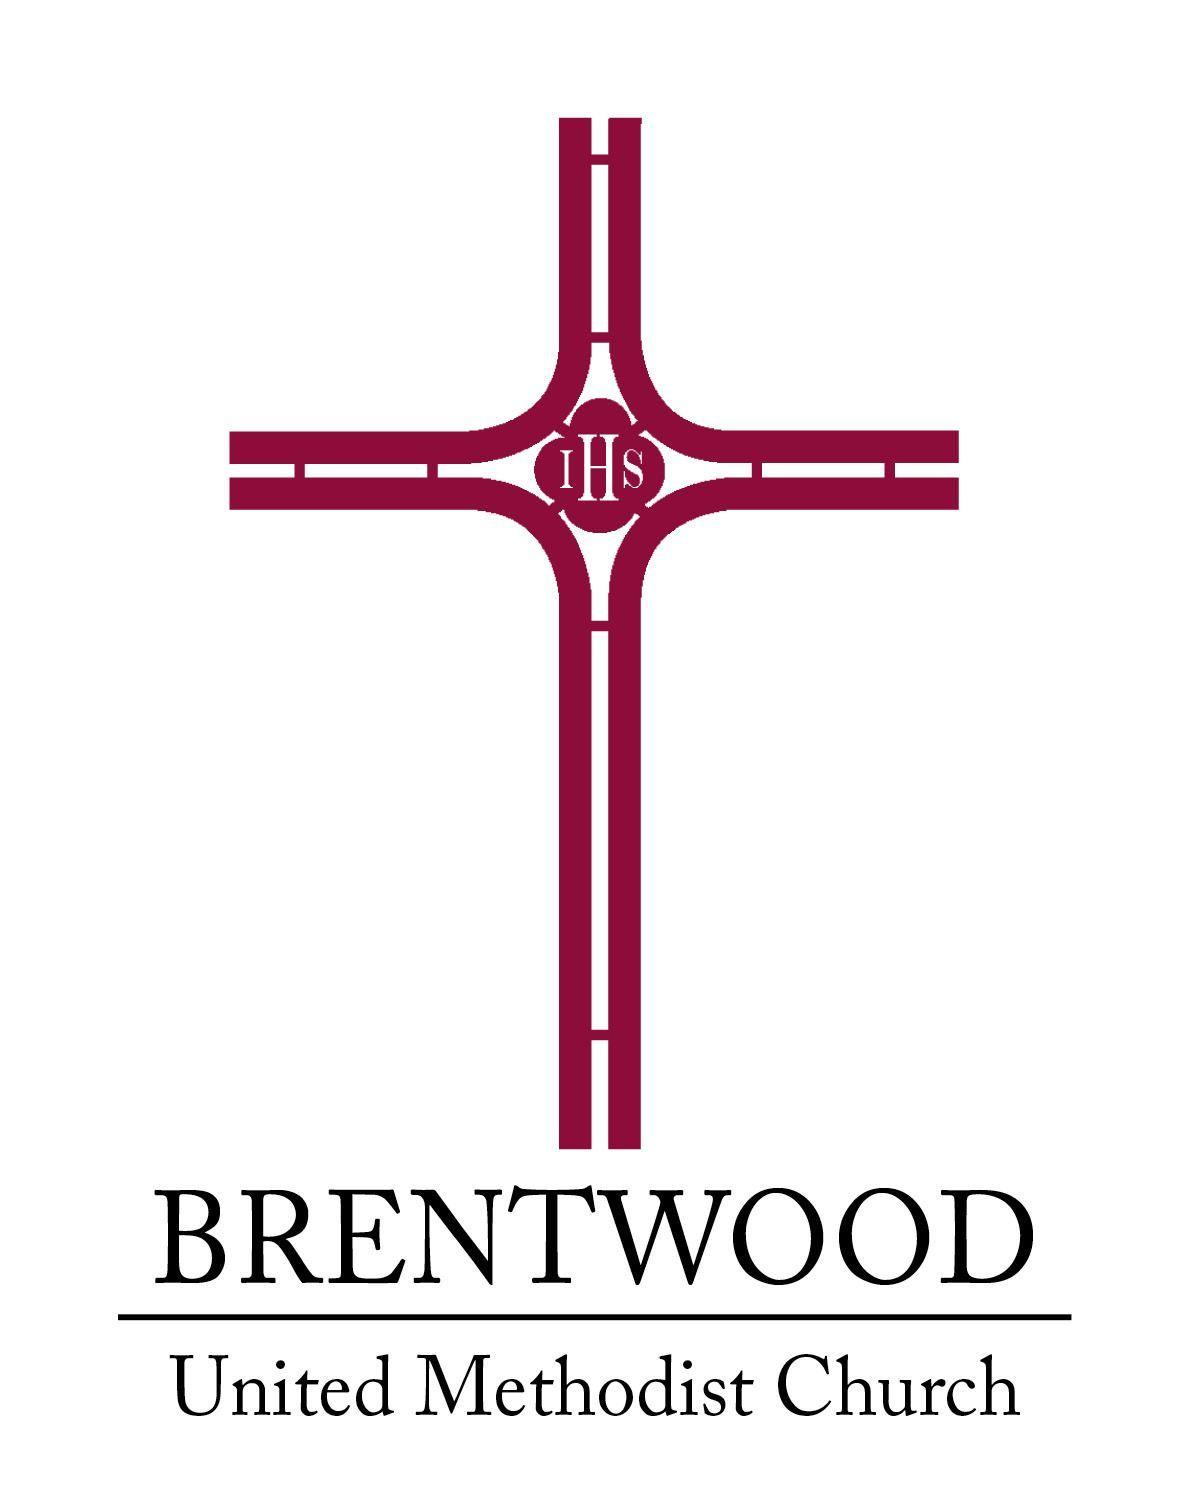 brentwood christian singles Singles groups / church singles / ministries  brentwood united methodist singles game nights    top 20 things to look for in a christian mate.